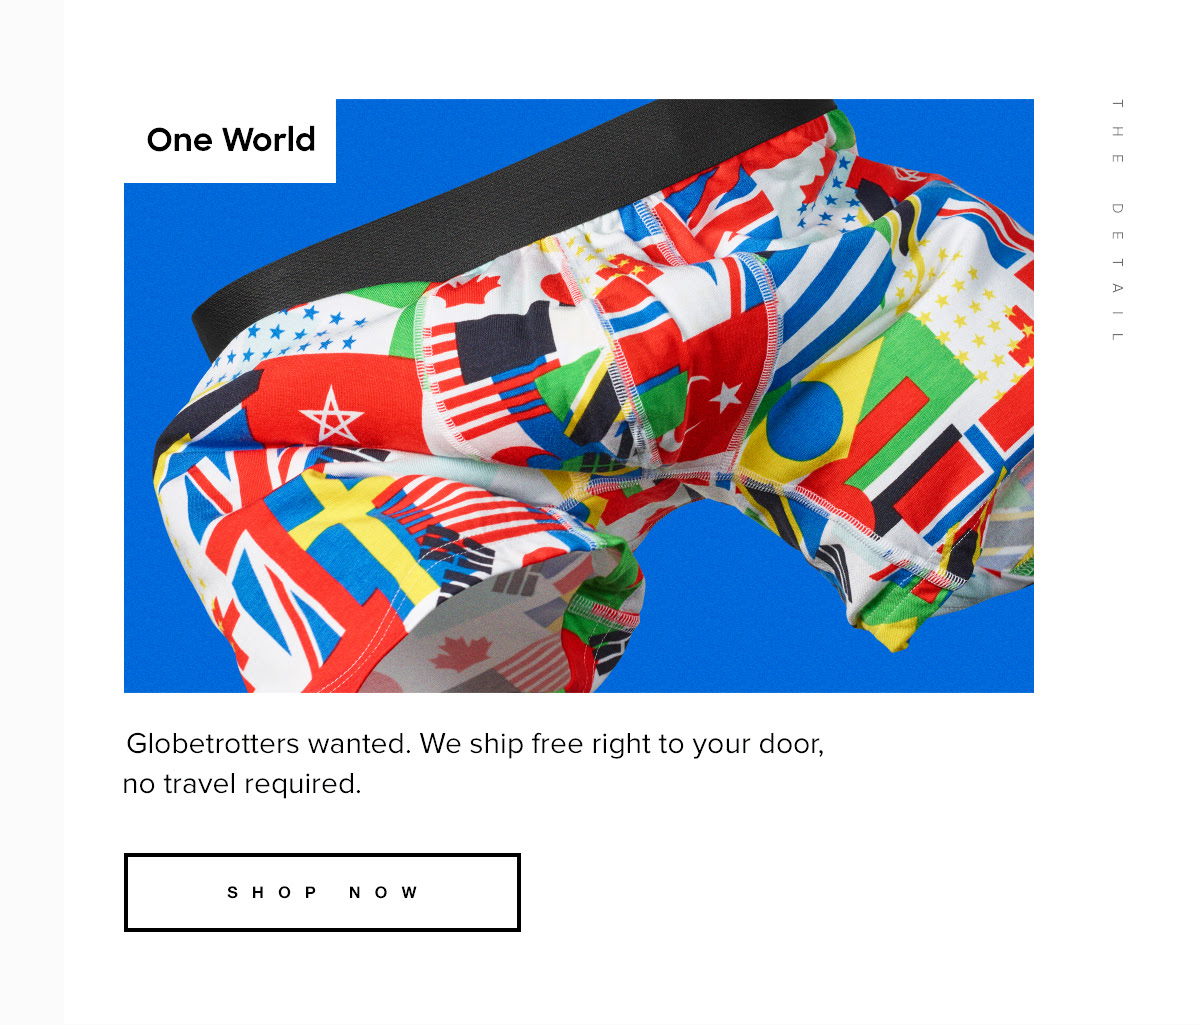 One World. Globetrotters wanted. We ship free right to your door, no travel required. Shop Now